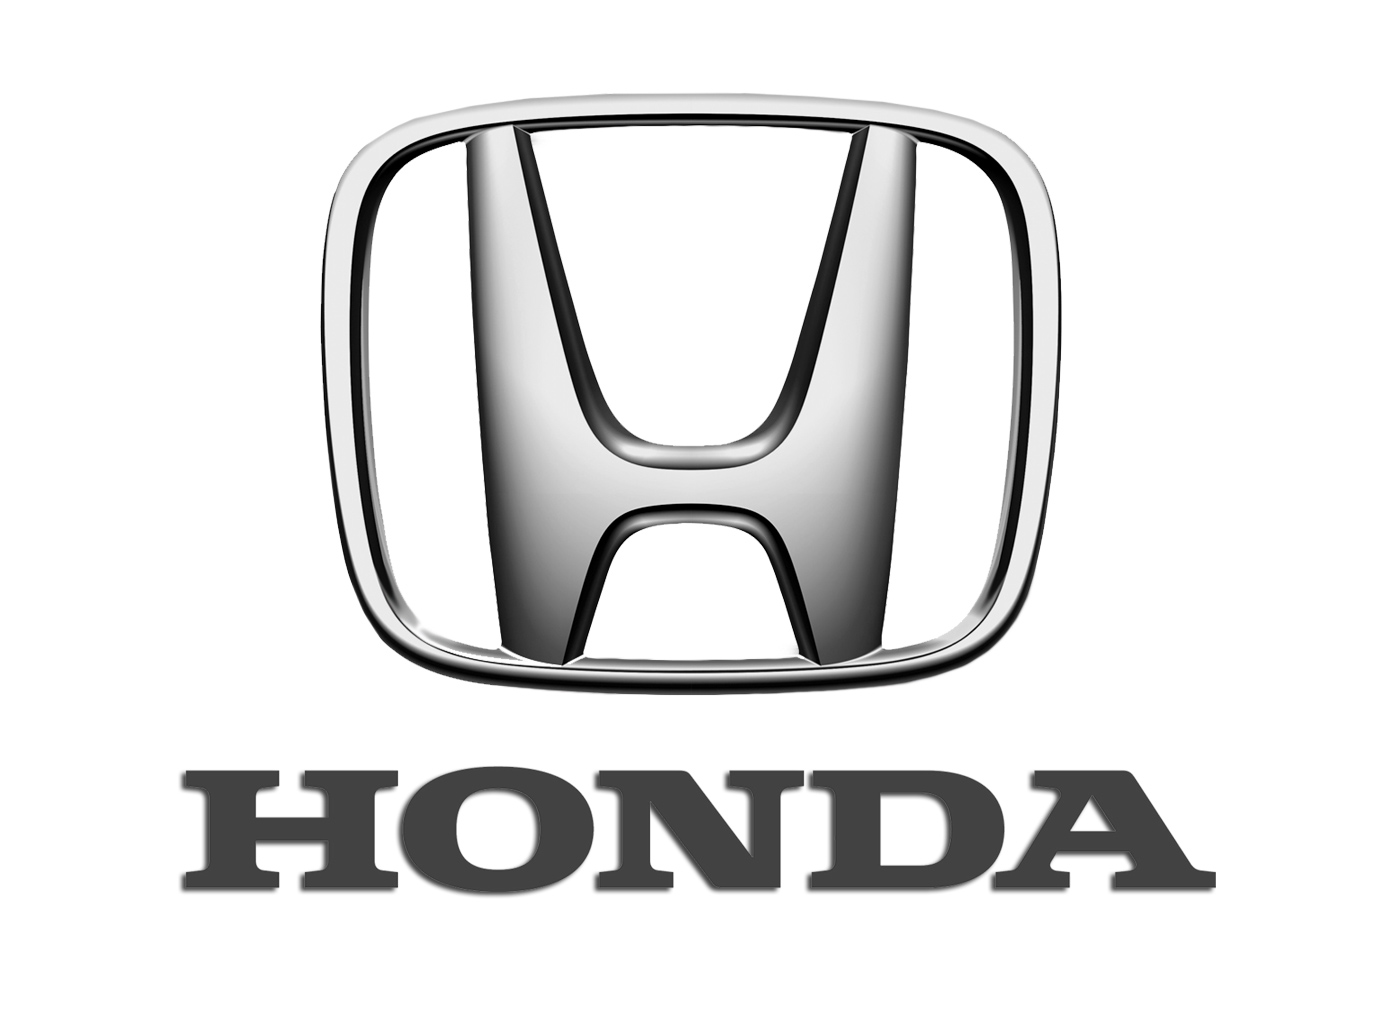 large honda car logo zero to 60 times. Black Bedroom Furniture Sets. Home Design Ideas